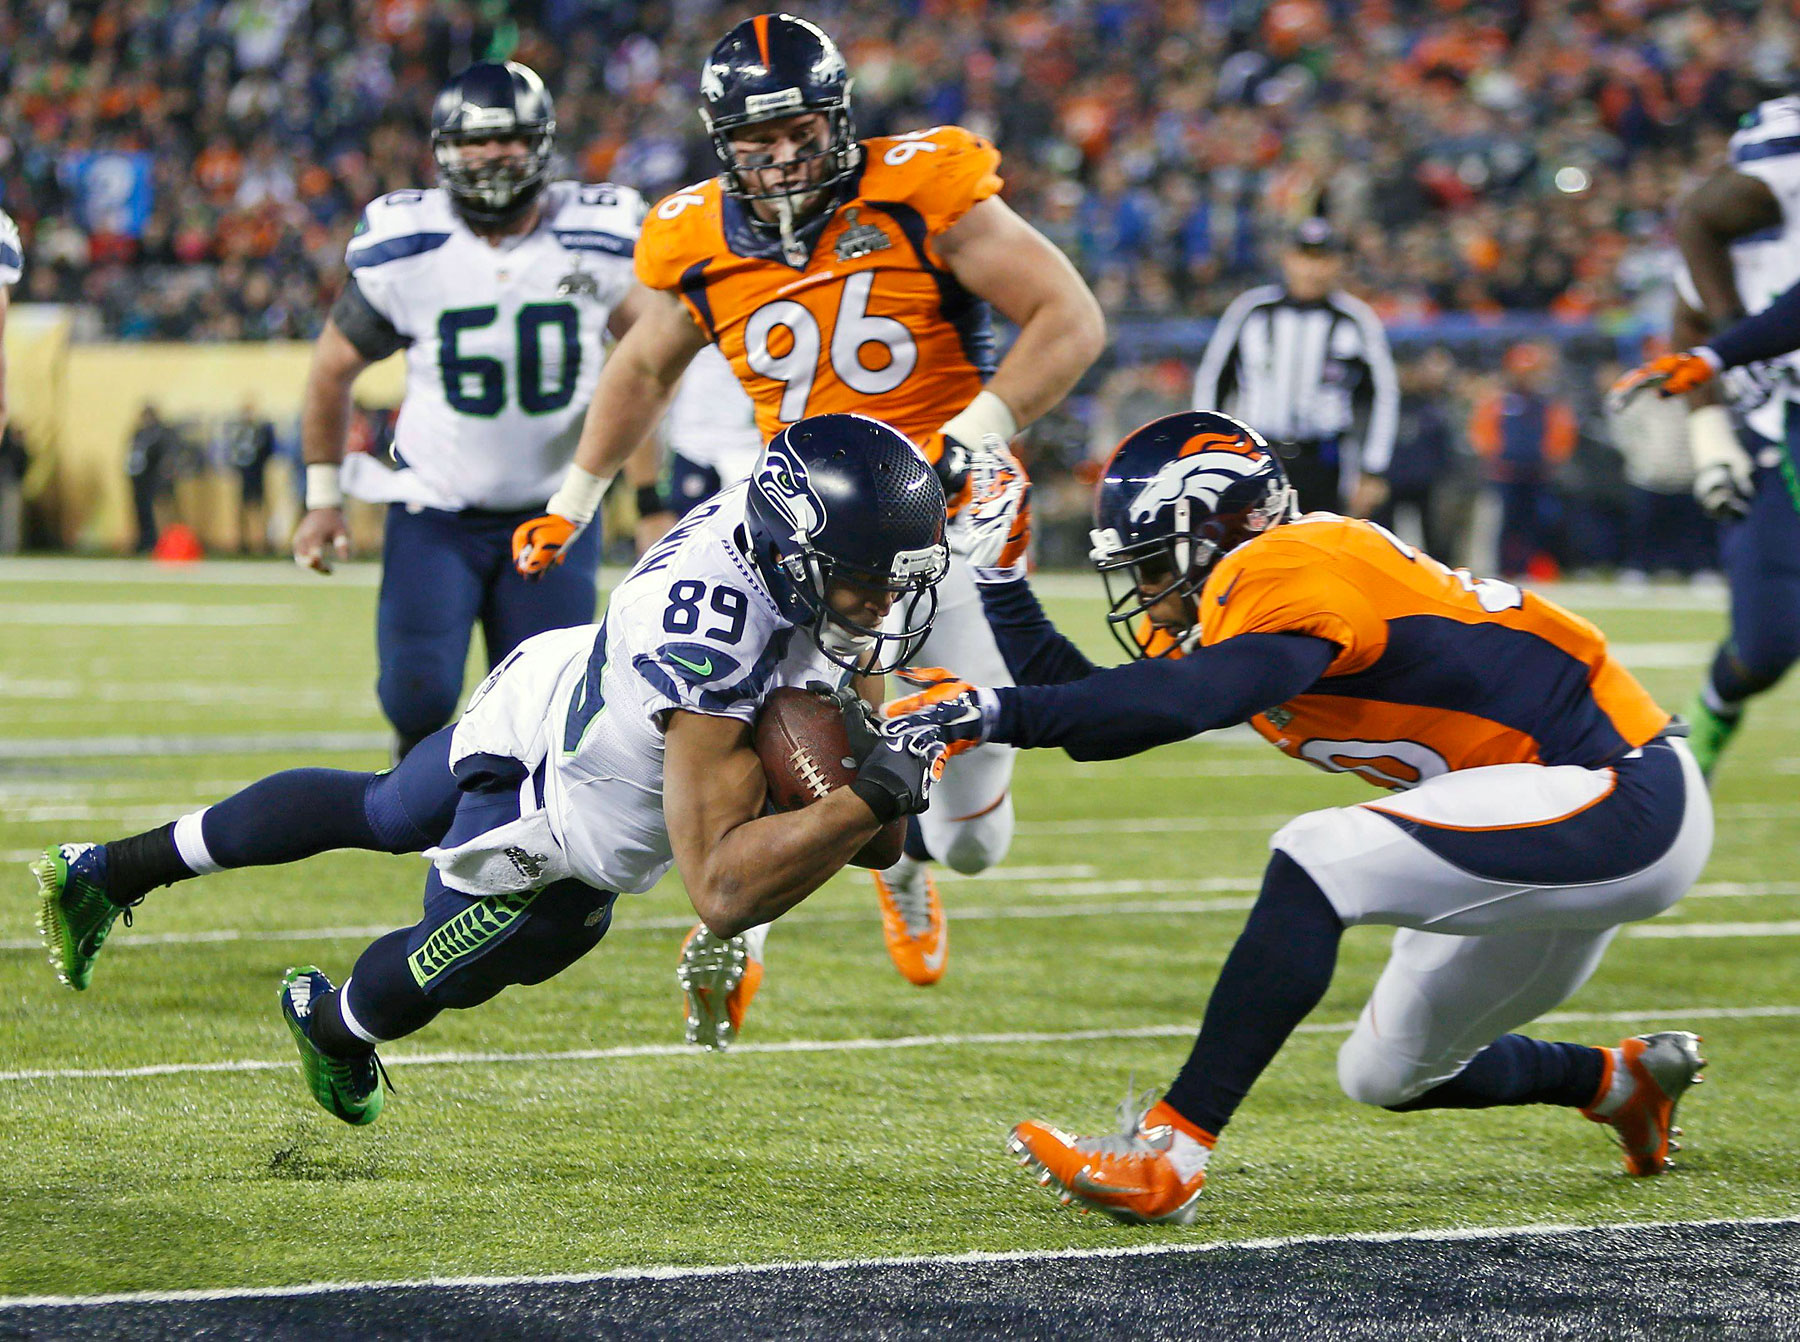 Seattle Seahawks wide receiver Doug Baldwin dives into the end zone for a touchdown past Denver Broncos free safety Mike Adams during the fourth quarter.